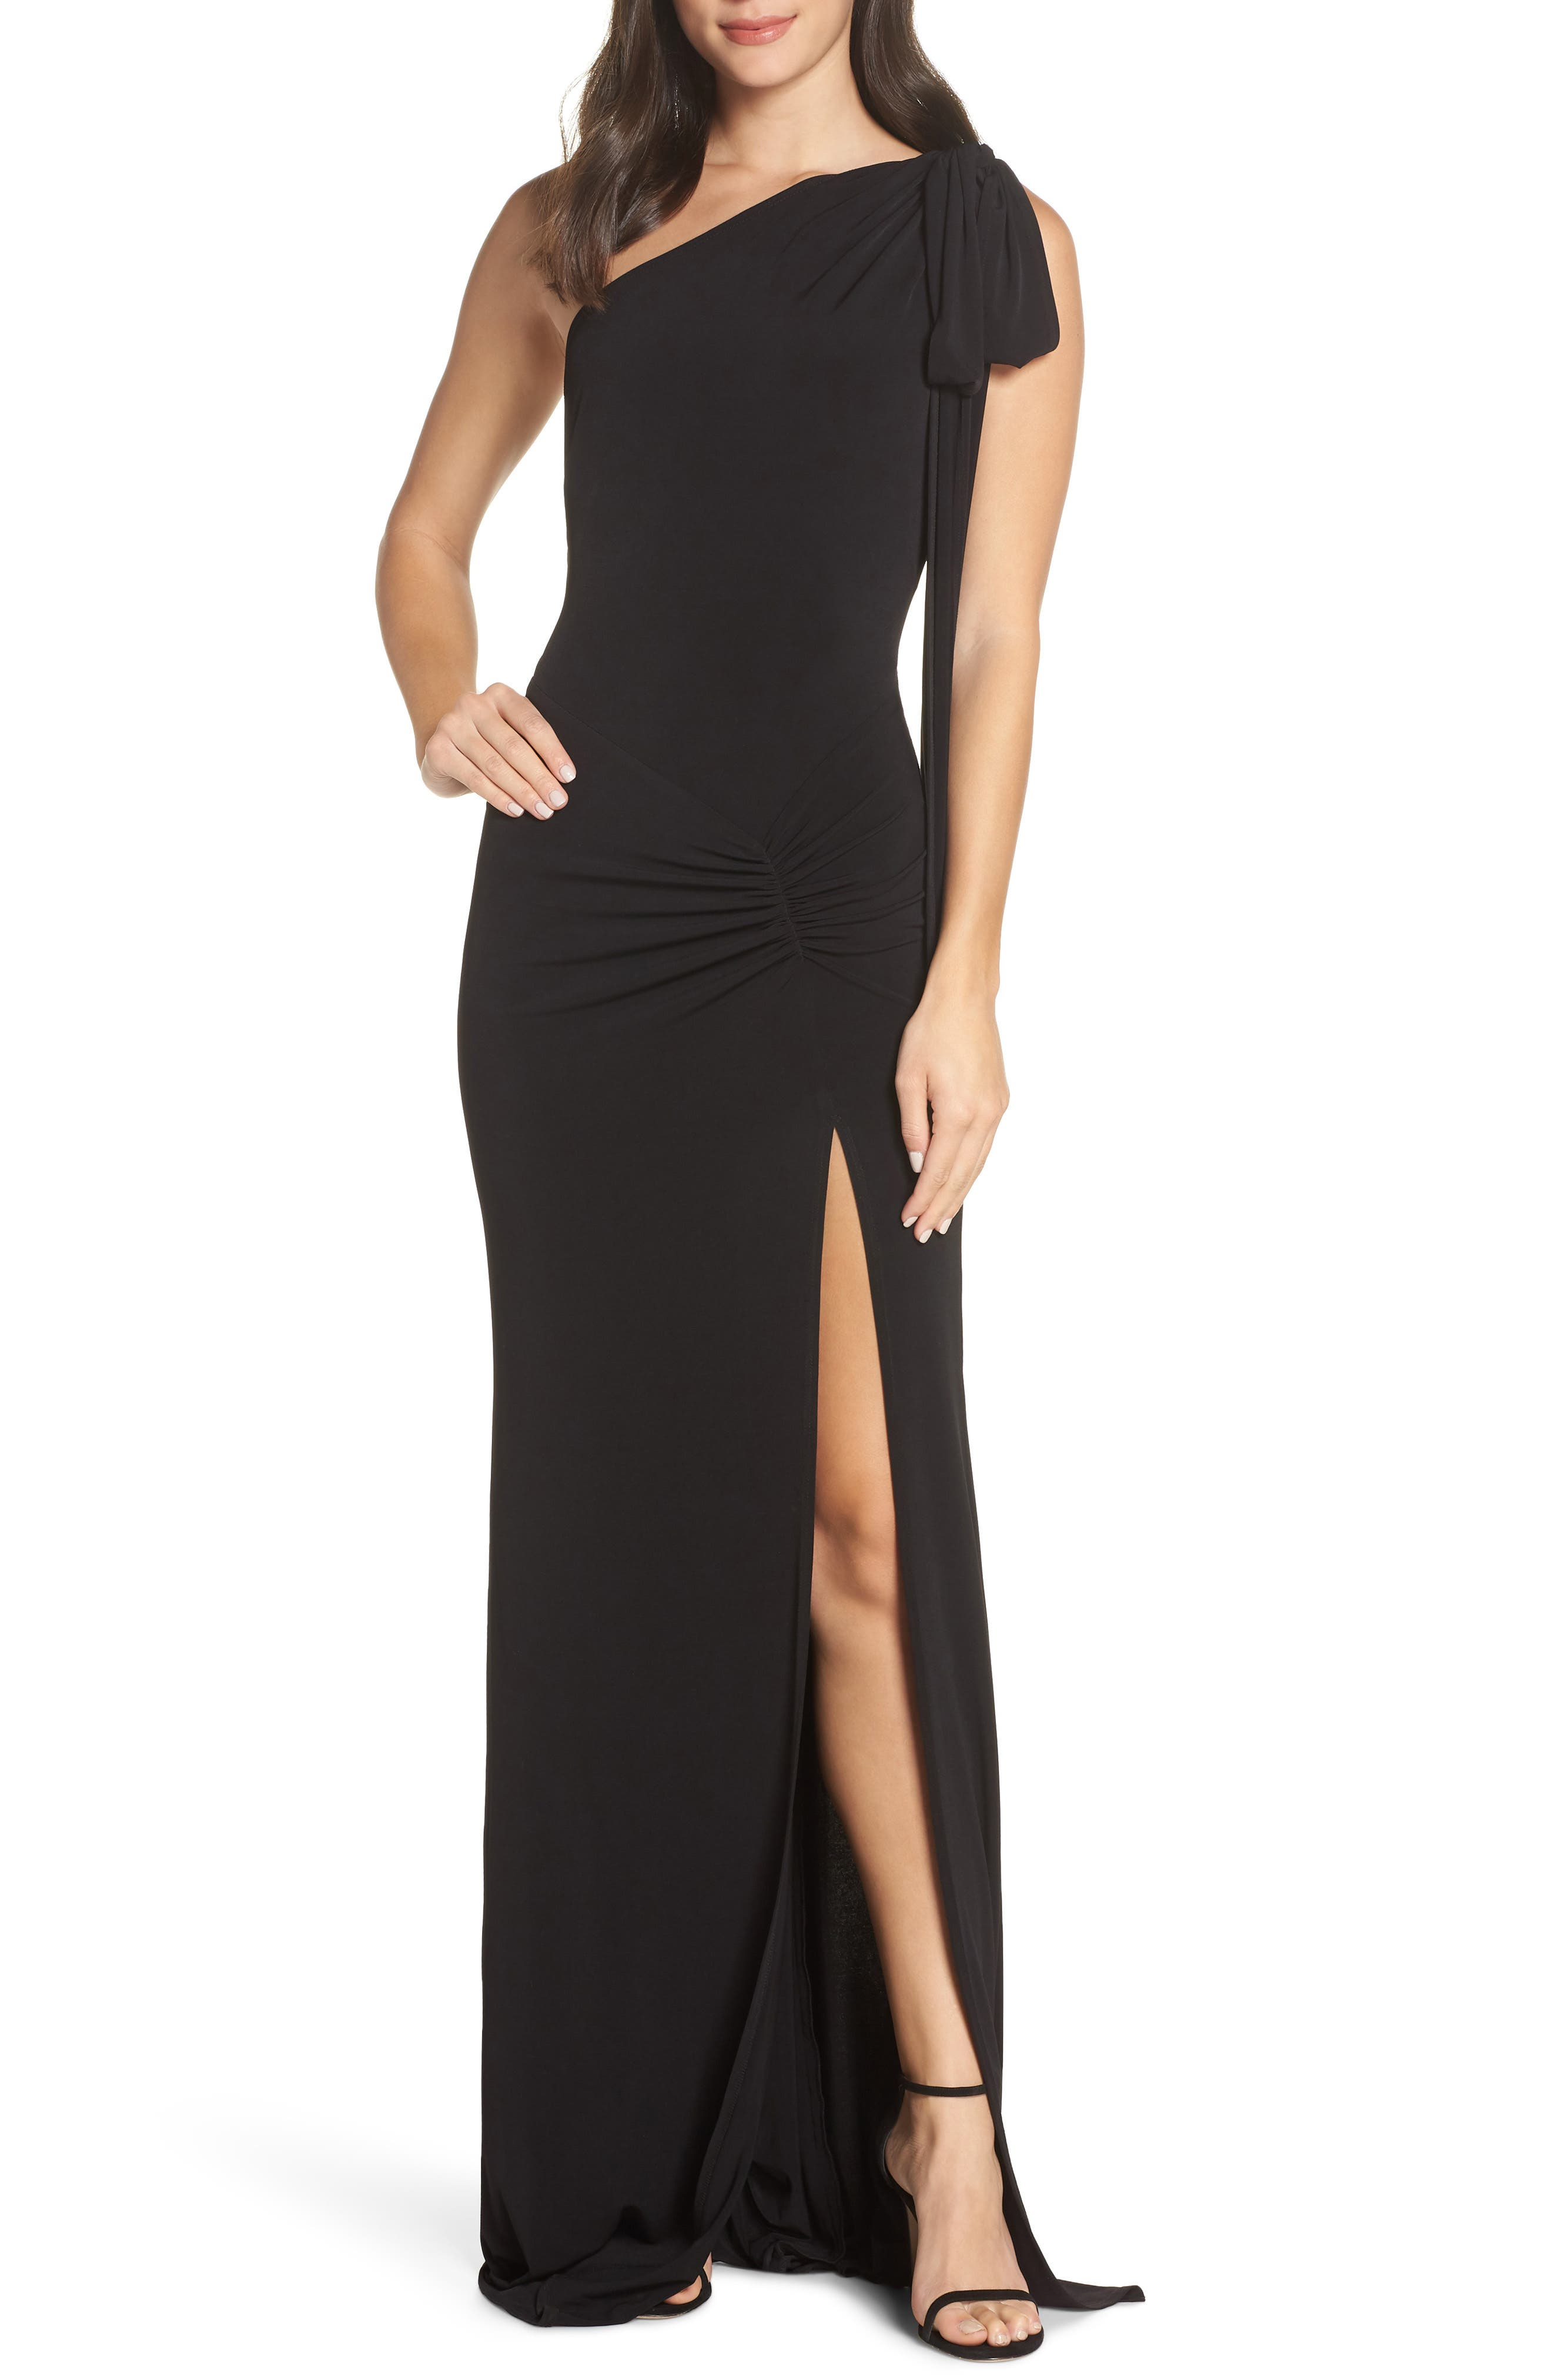 KATIE MAY,                             One-Shoulder Gown,                             Main thumbnail 1, color,                             BLACK